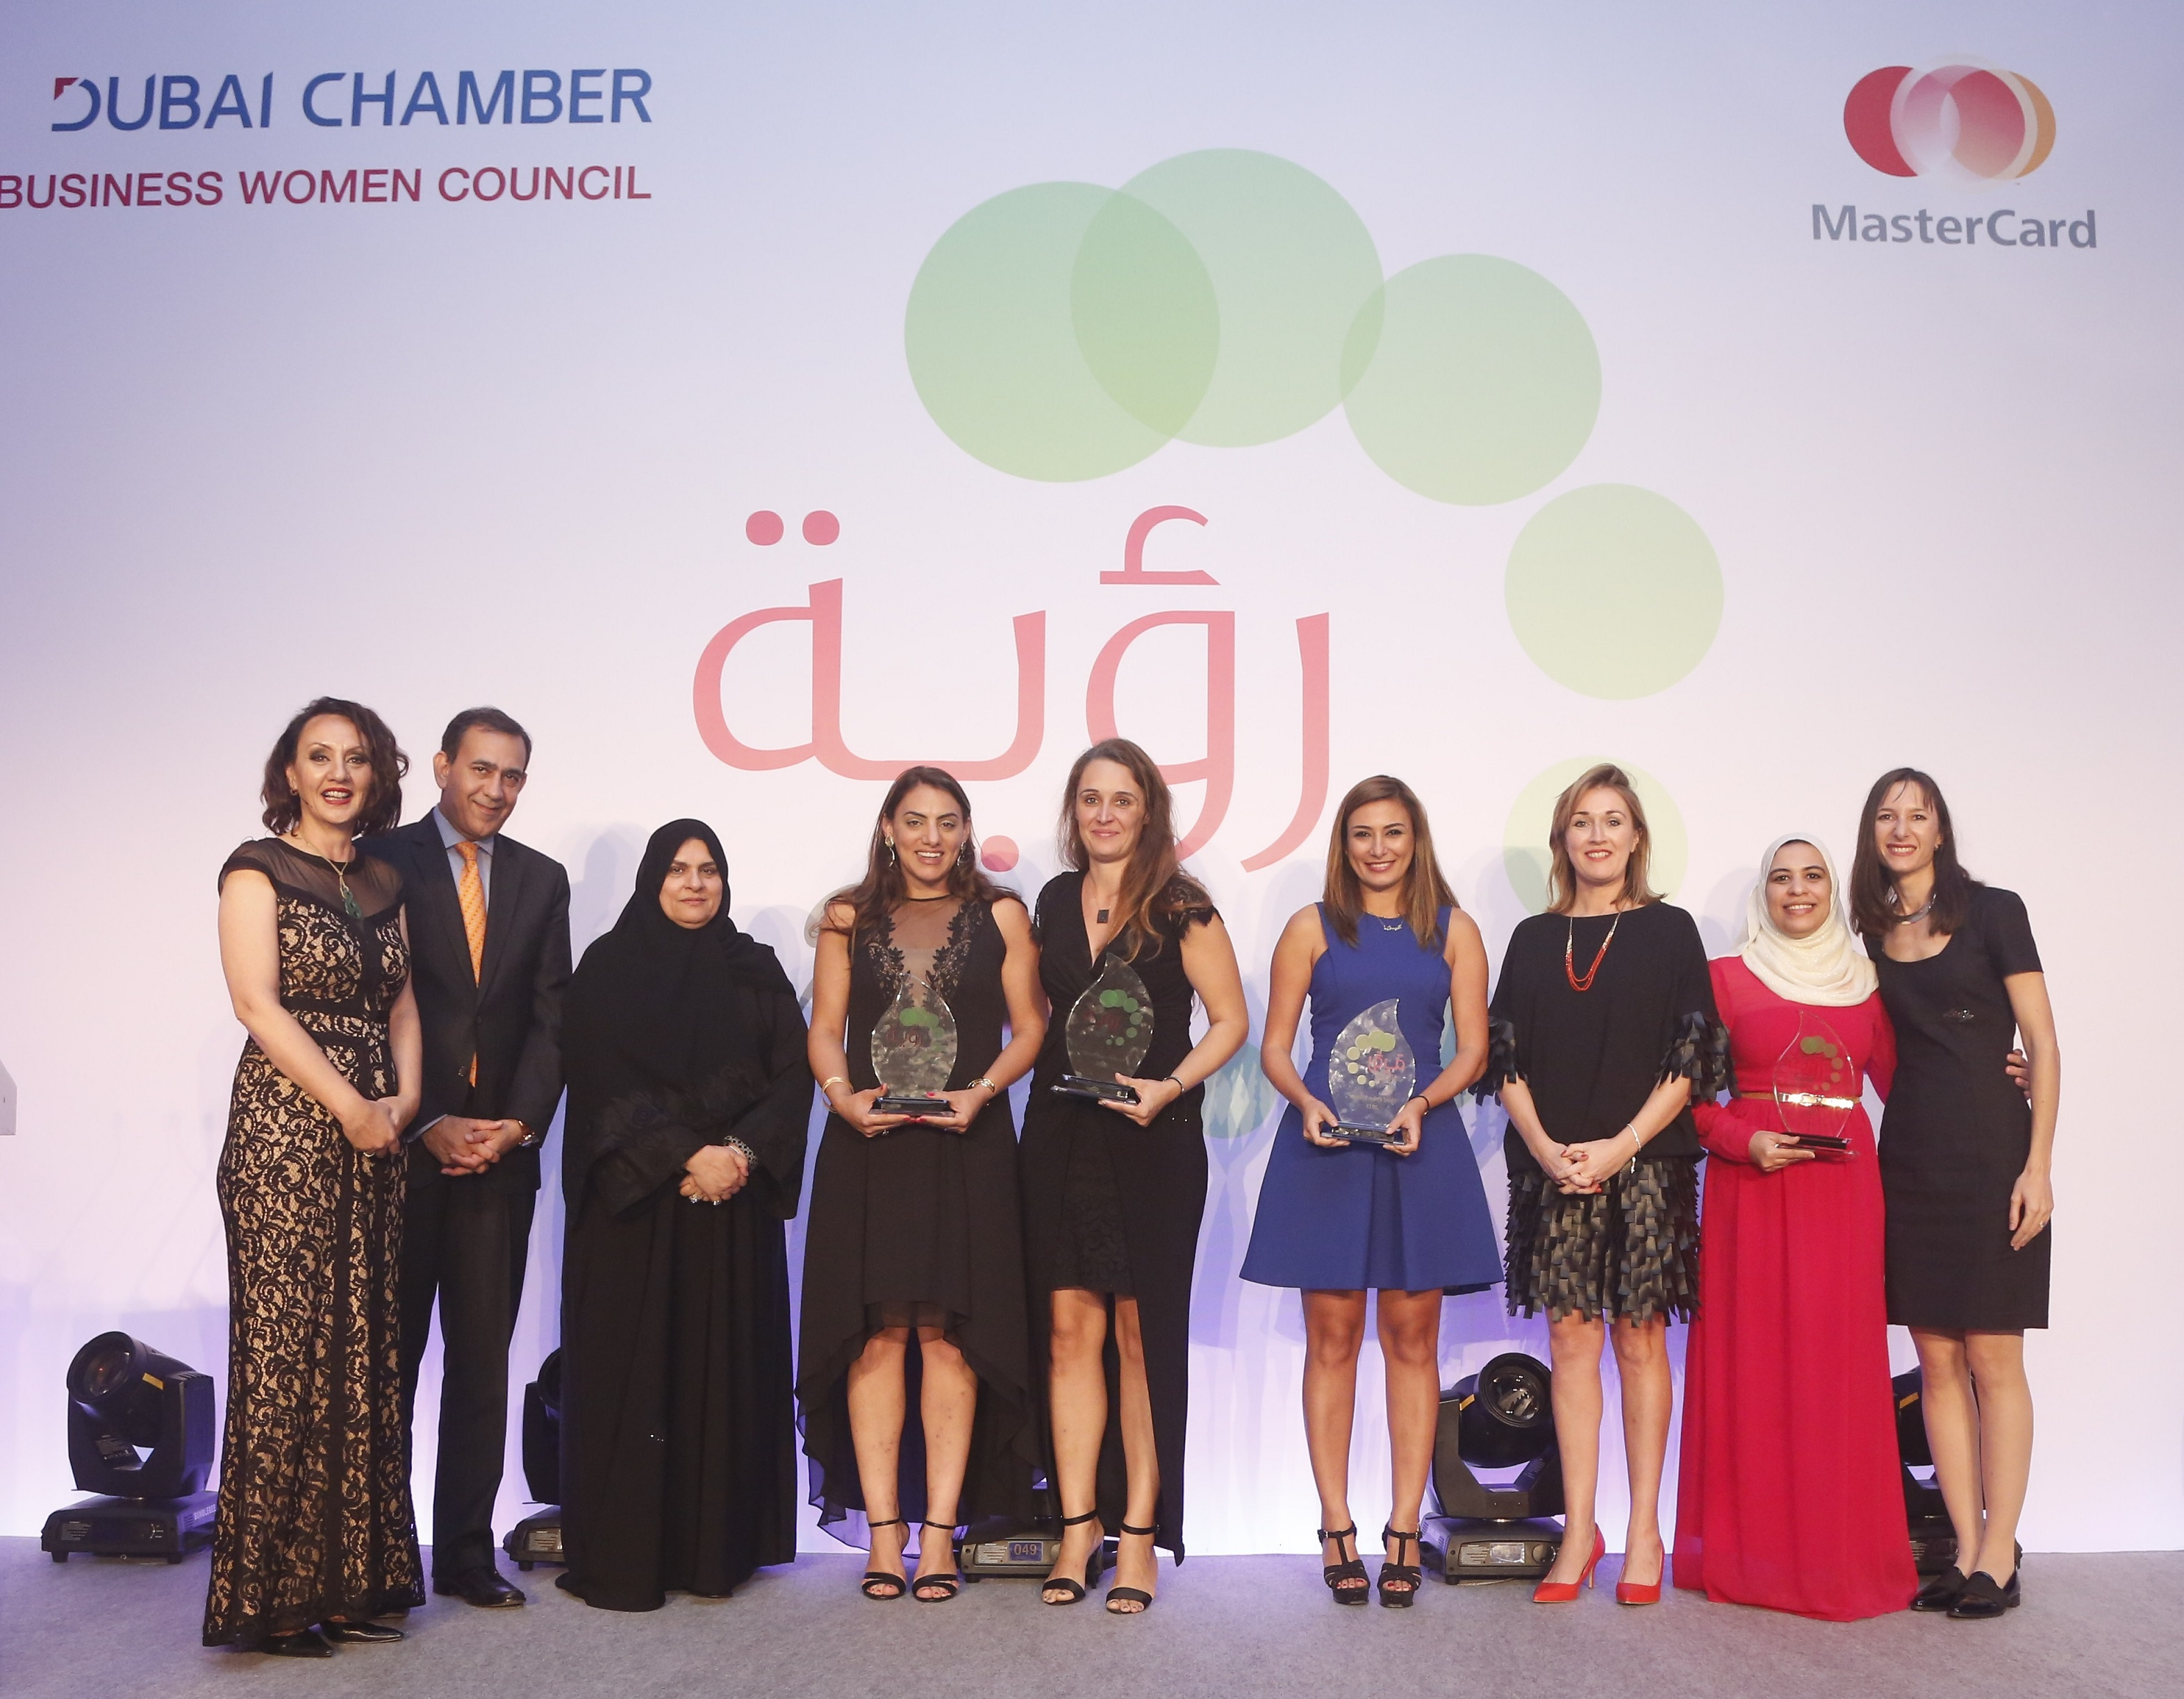 Dubai business women council and mastercard announce roya 2015 dubai business women council and mastercard announce roya 2015 winners magicingreecefo Images